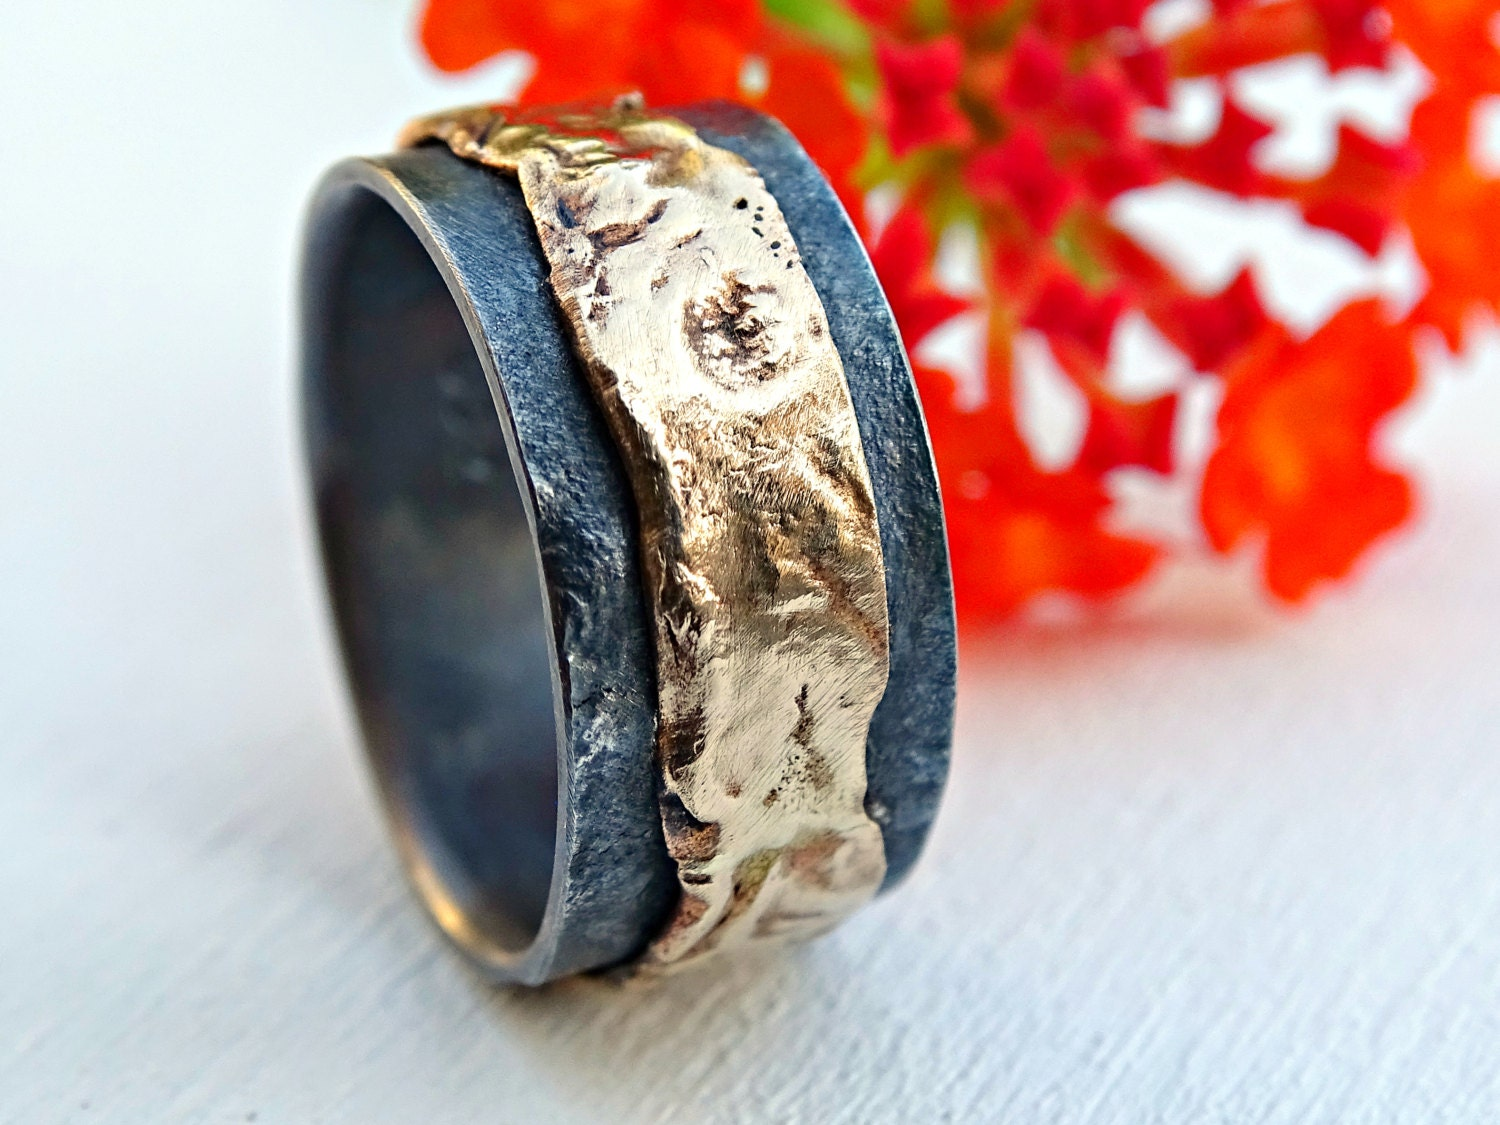 It is a graphic of unique mens wedding band gold silver, mens ring gold wedding ring black, silver gold ring molten, viking wedding band, artisan gold ring